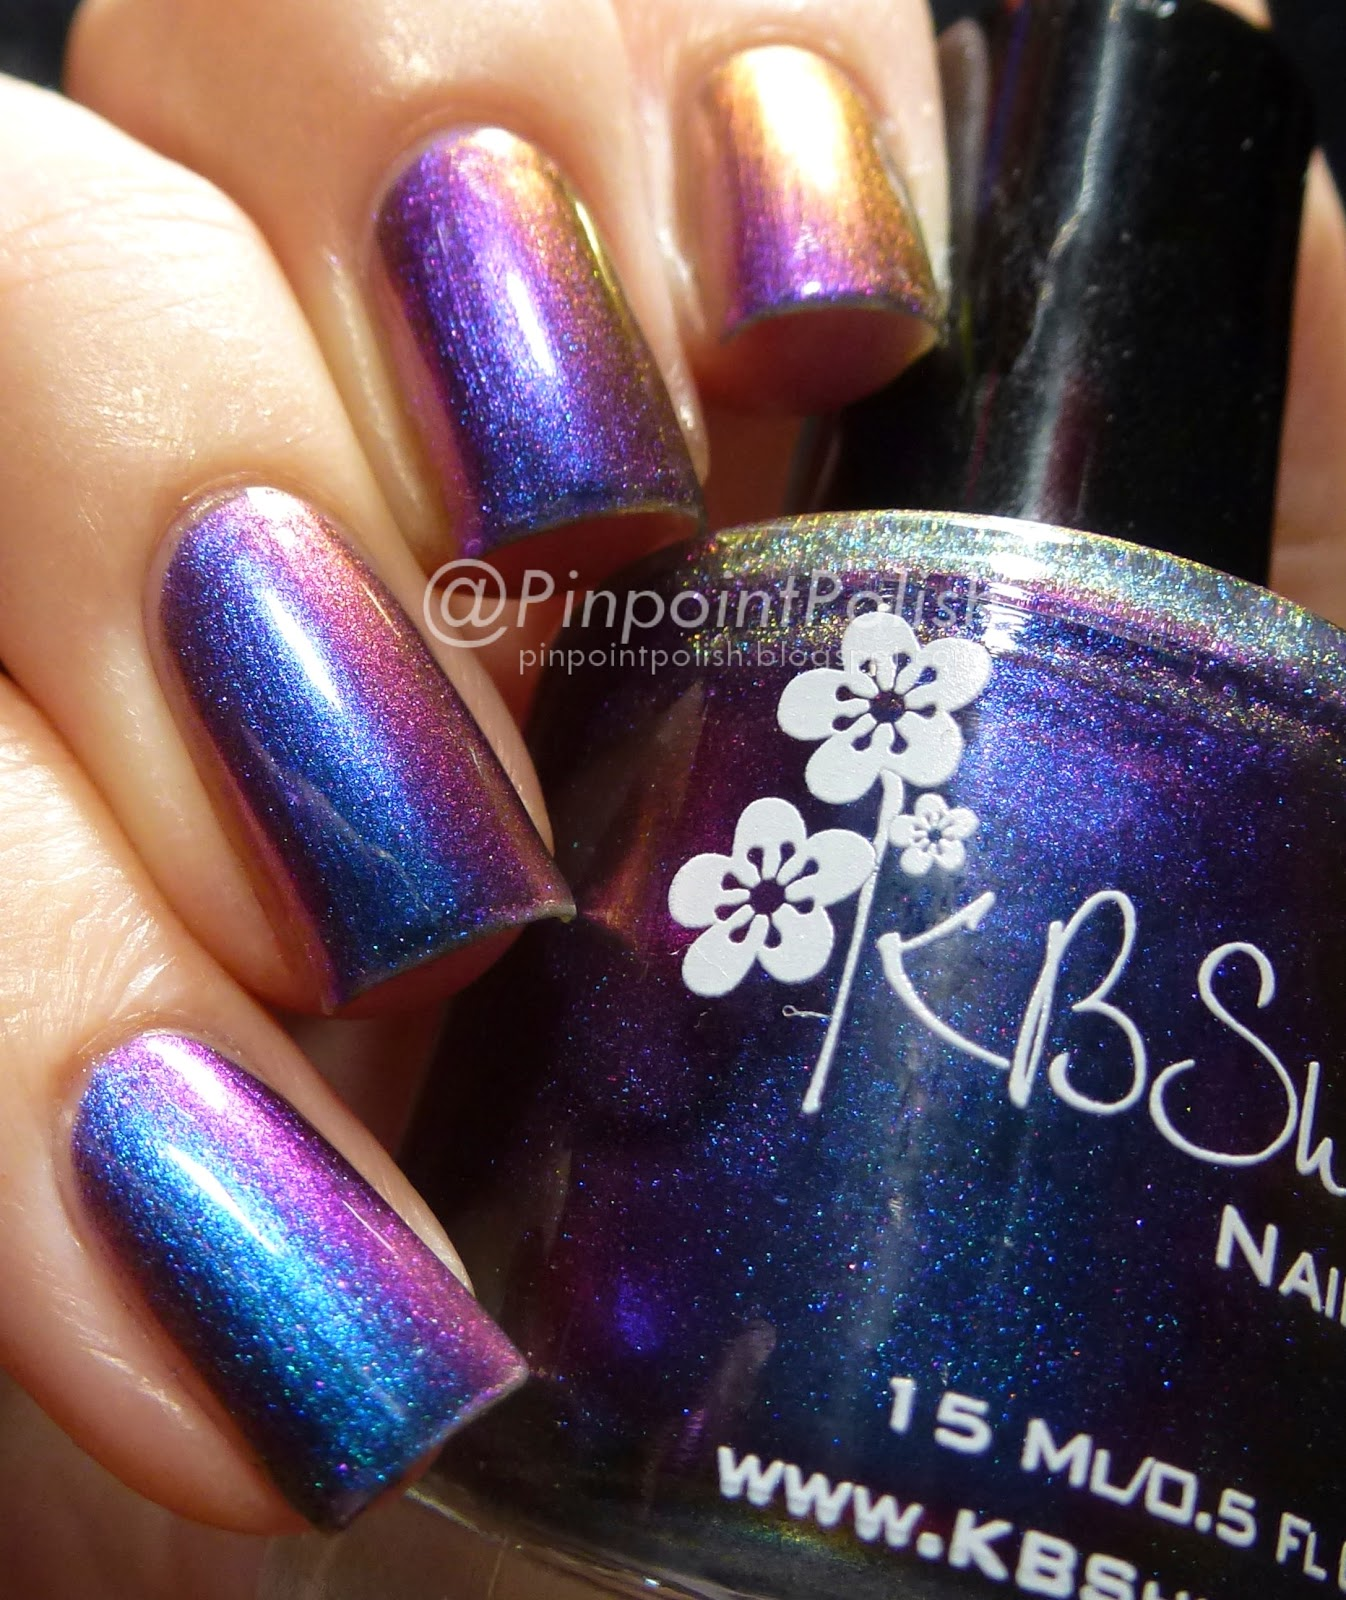 Pinpoint Polish!: KBShimmer - Shade Shifter & Rollin\' With The Chromies